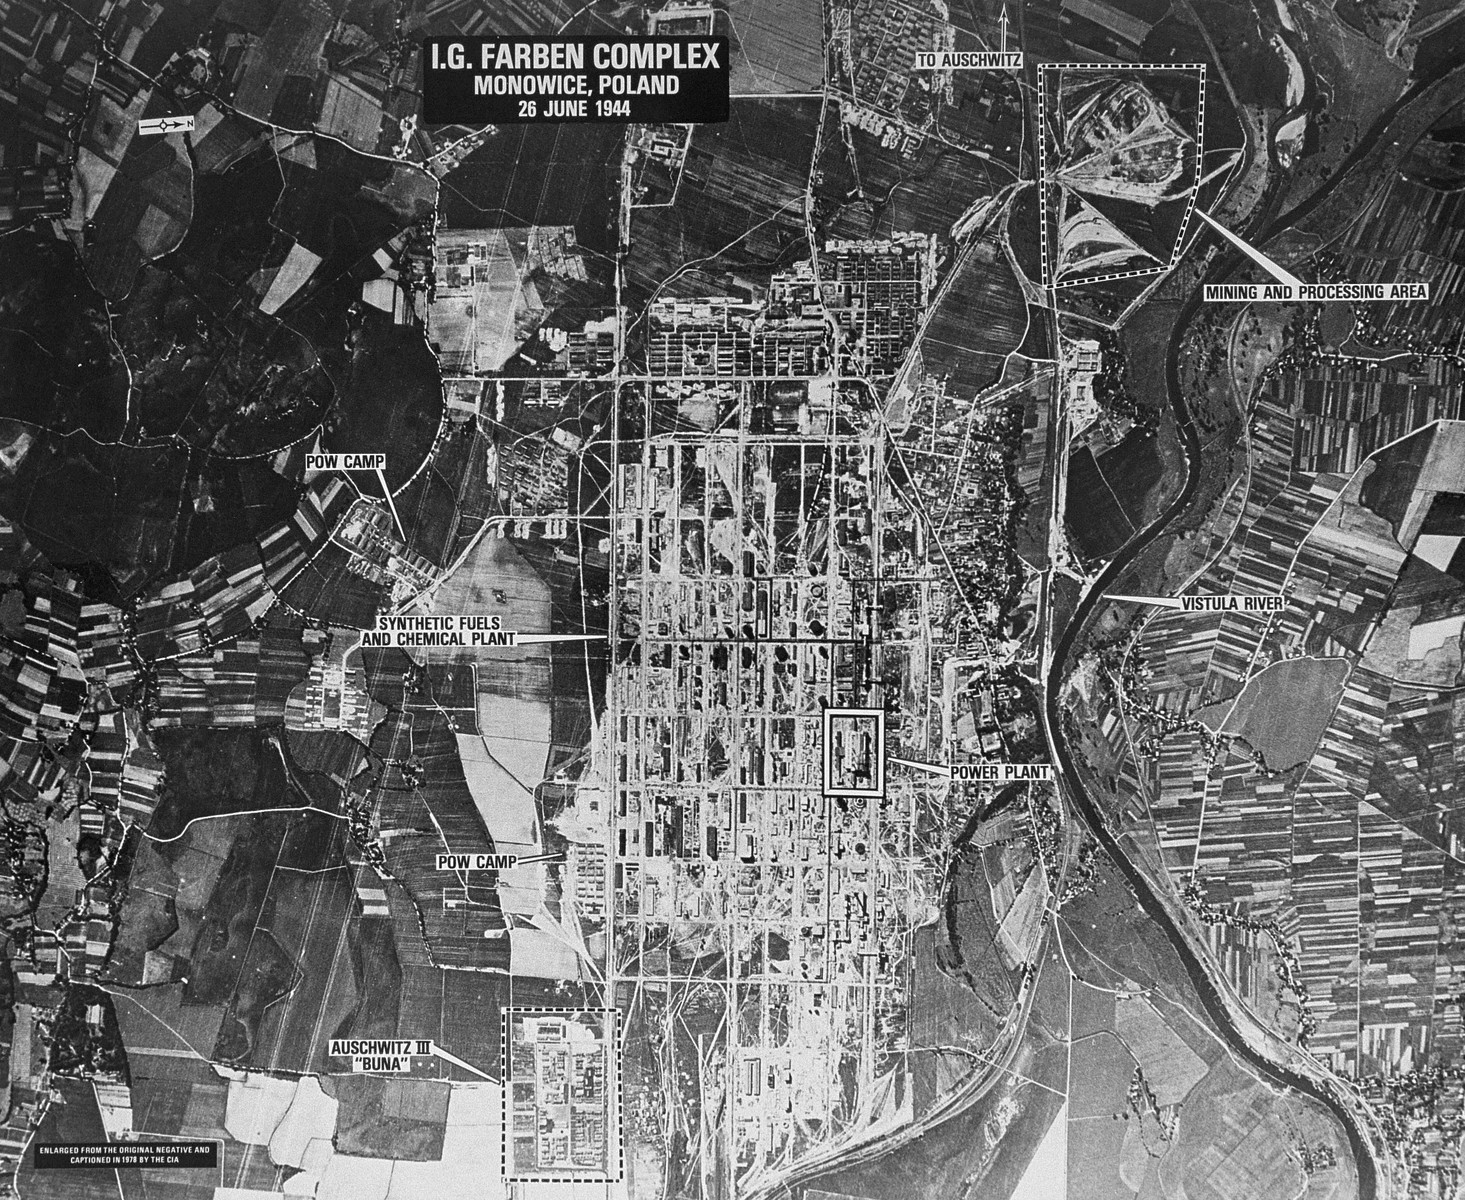 An aerial reconnaissance photograph showing the Auschwitz III (Monowitz) complex surrounding the I.G. Farben Buna production plant.